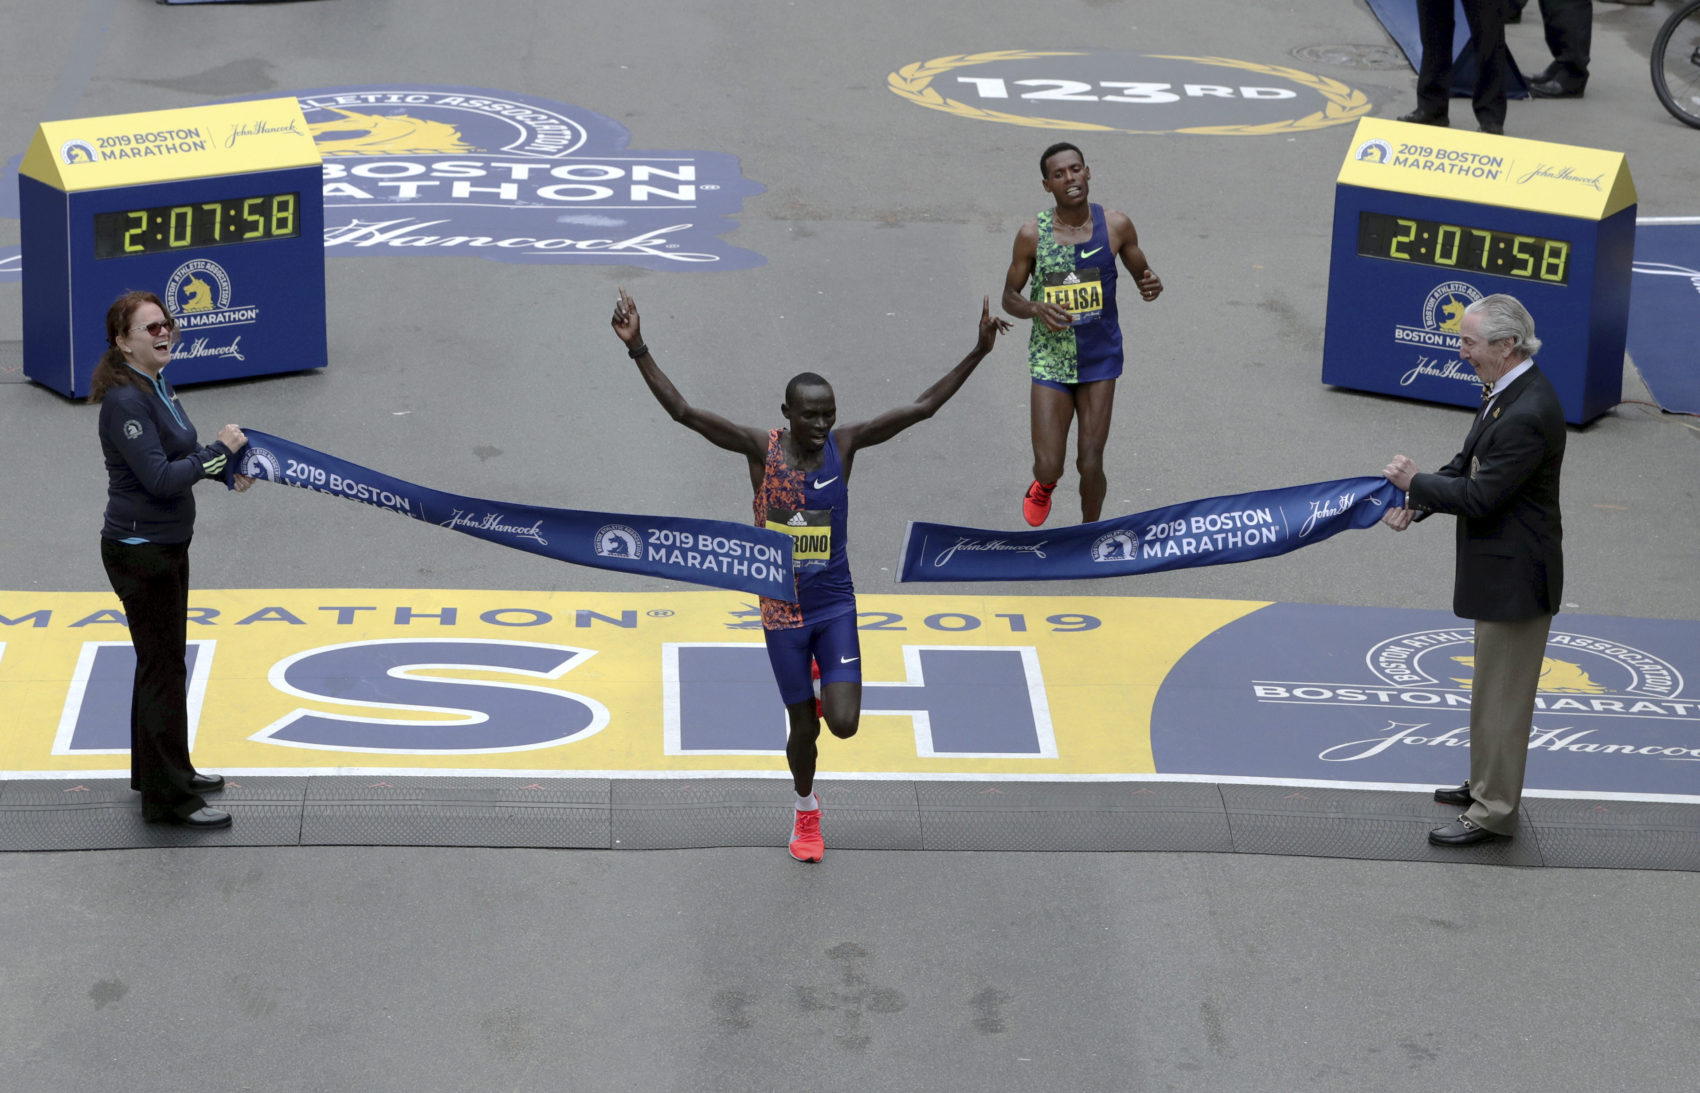 Lawrence Cherono, of Kenya, breaks the tape to win the 123rd Boston Marathon in front of Lelisa Desisa, of Ethiopia, right. (Charles Krupa/AP)